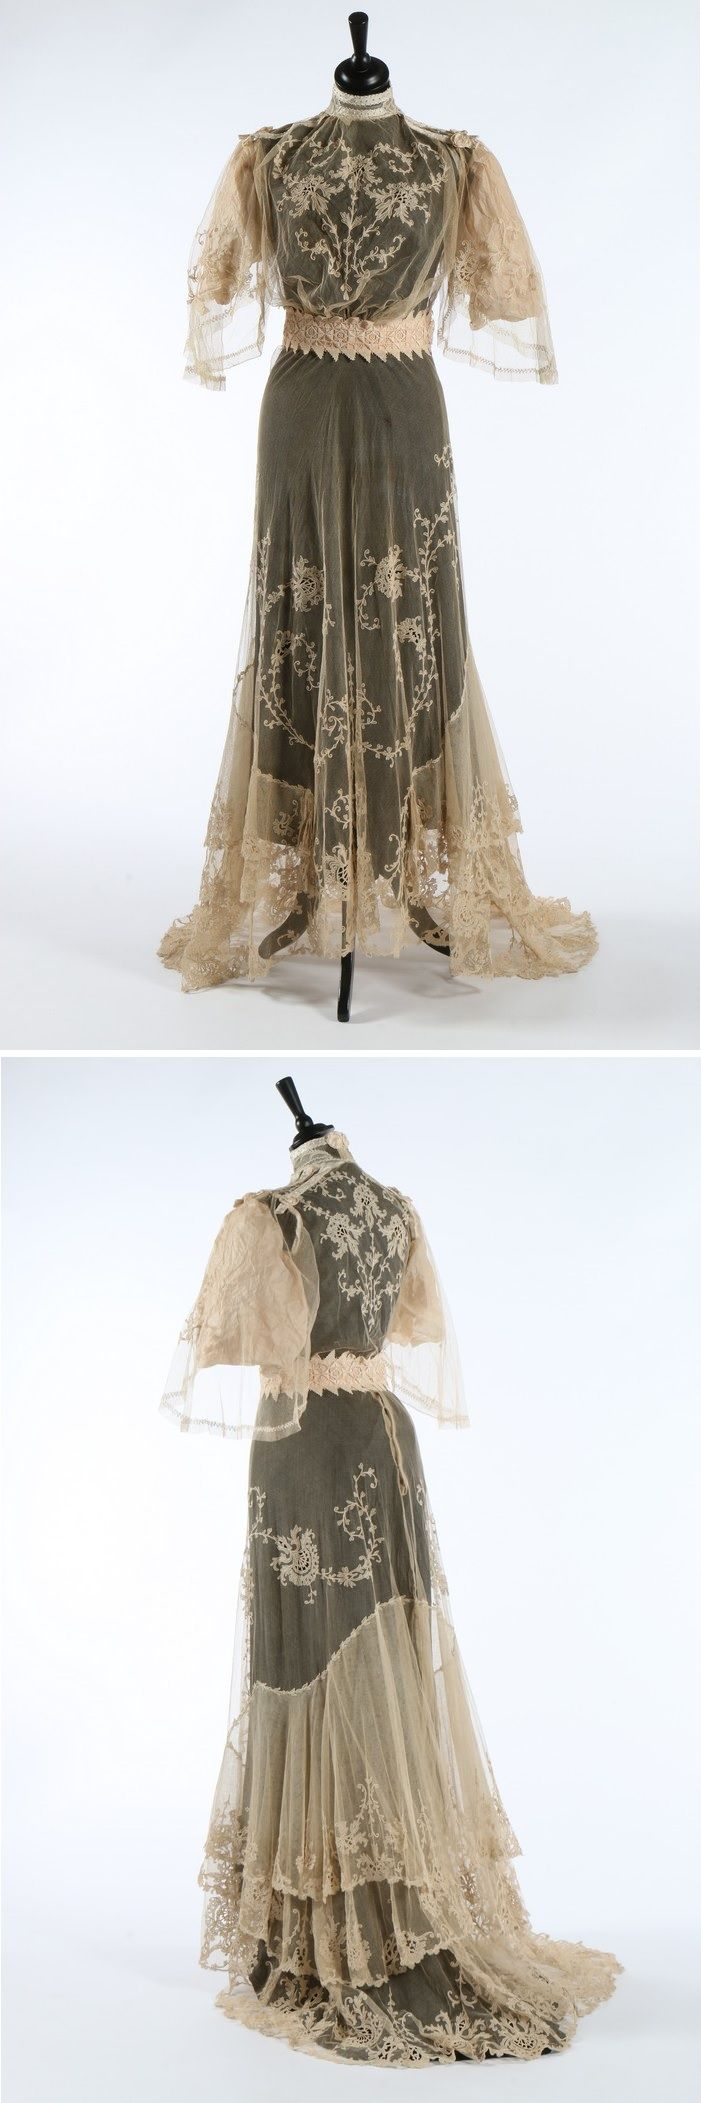 An embroidered lace bridal gown, circa 1905-10. the bodice slightly bloused at the front, embroidered silk bands to high neck and shoulders, later added chemical lace waistband, matching trained skirt.